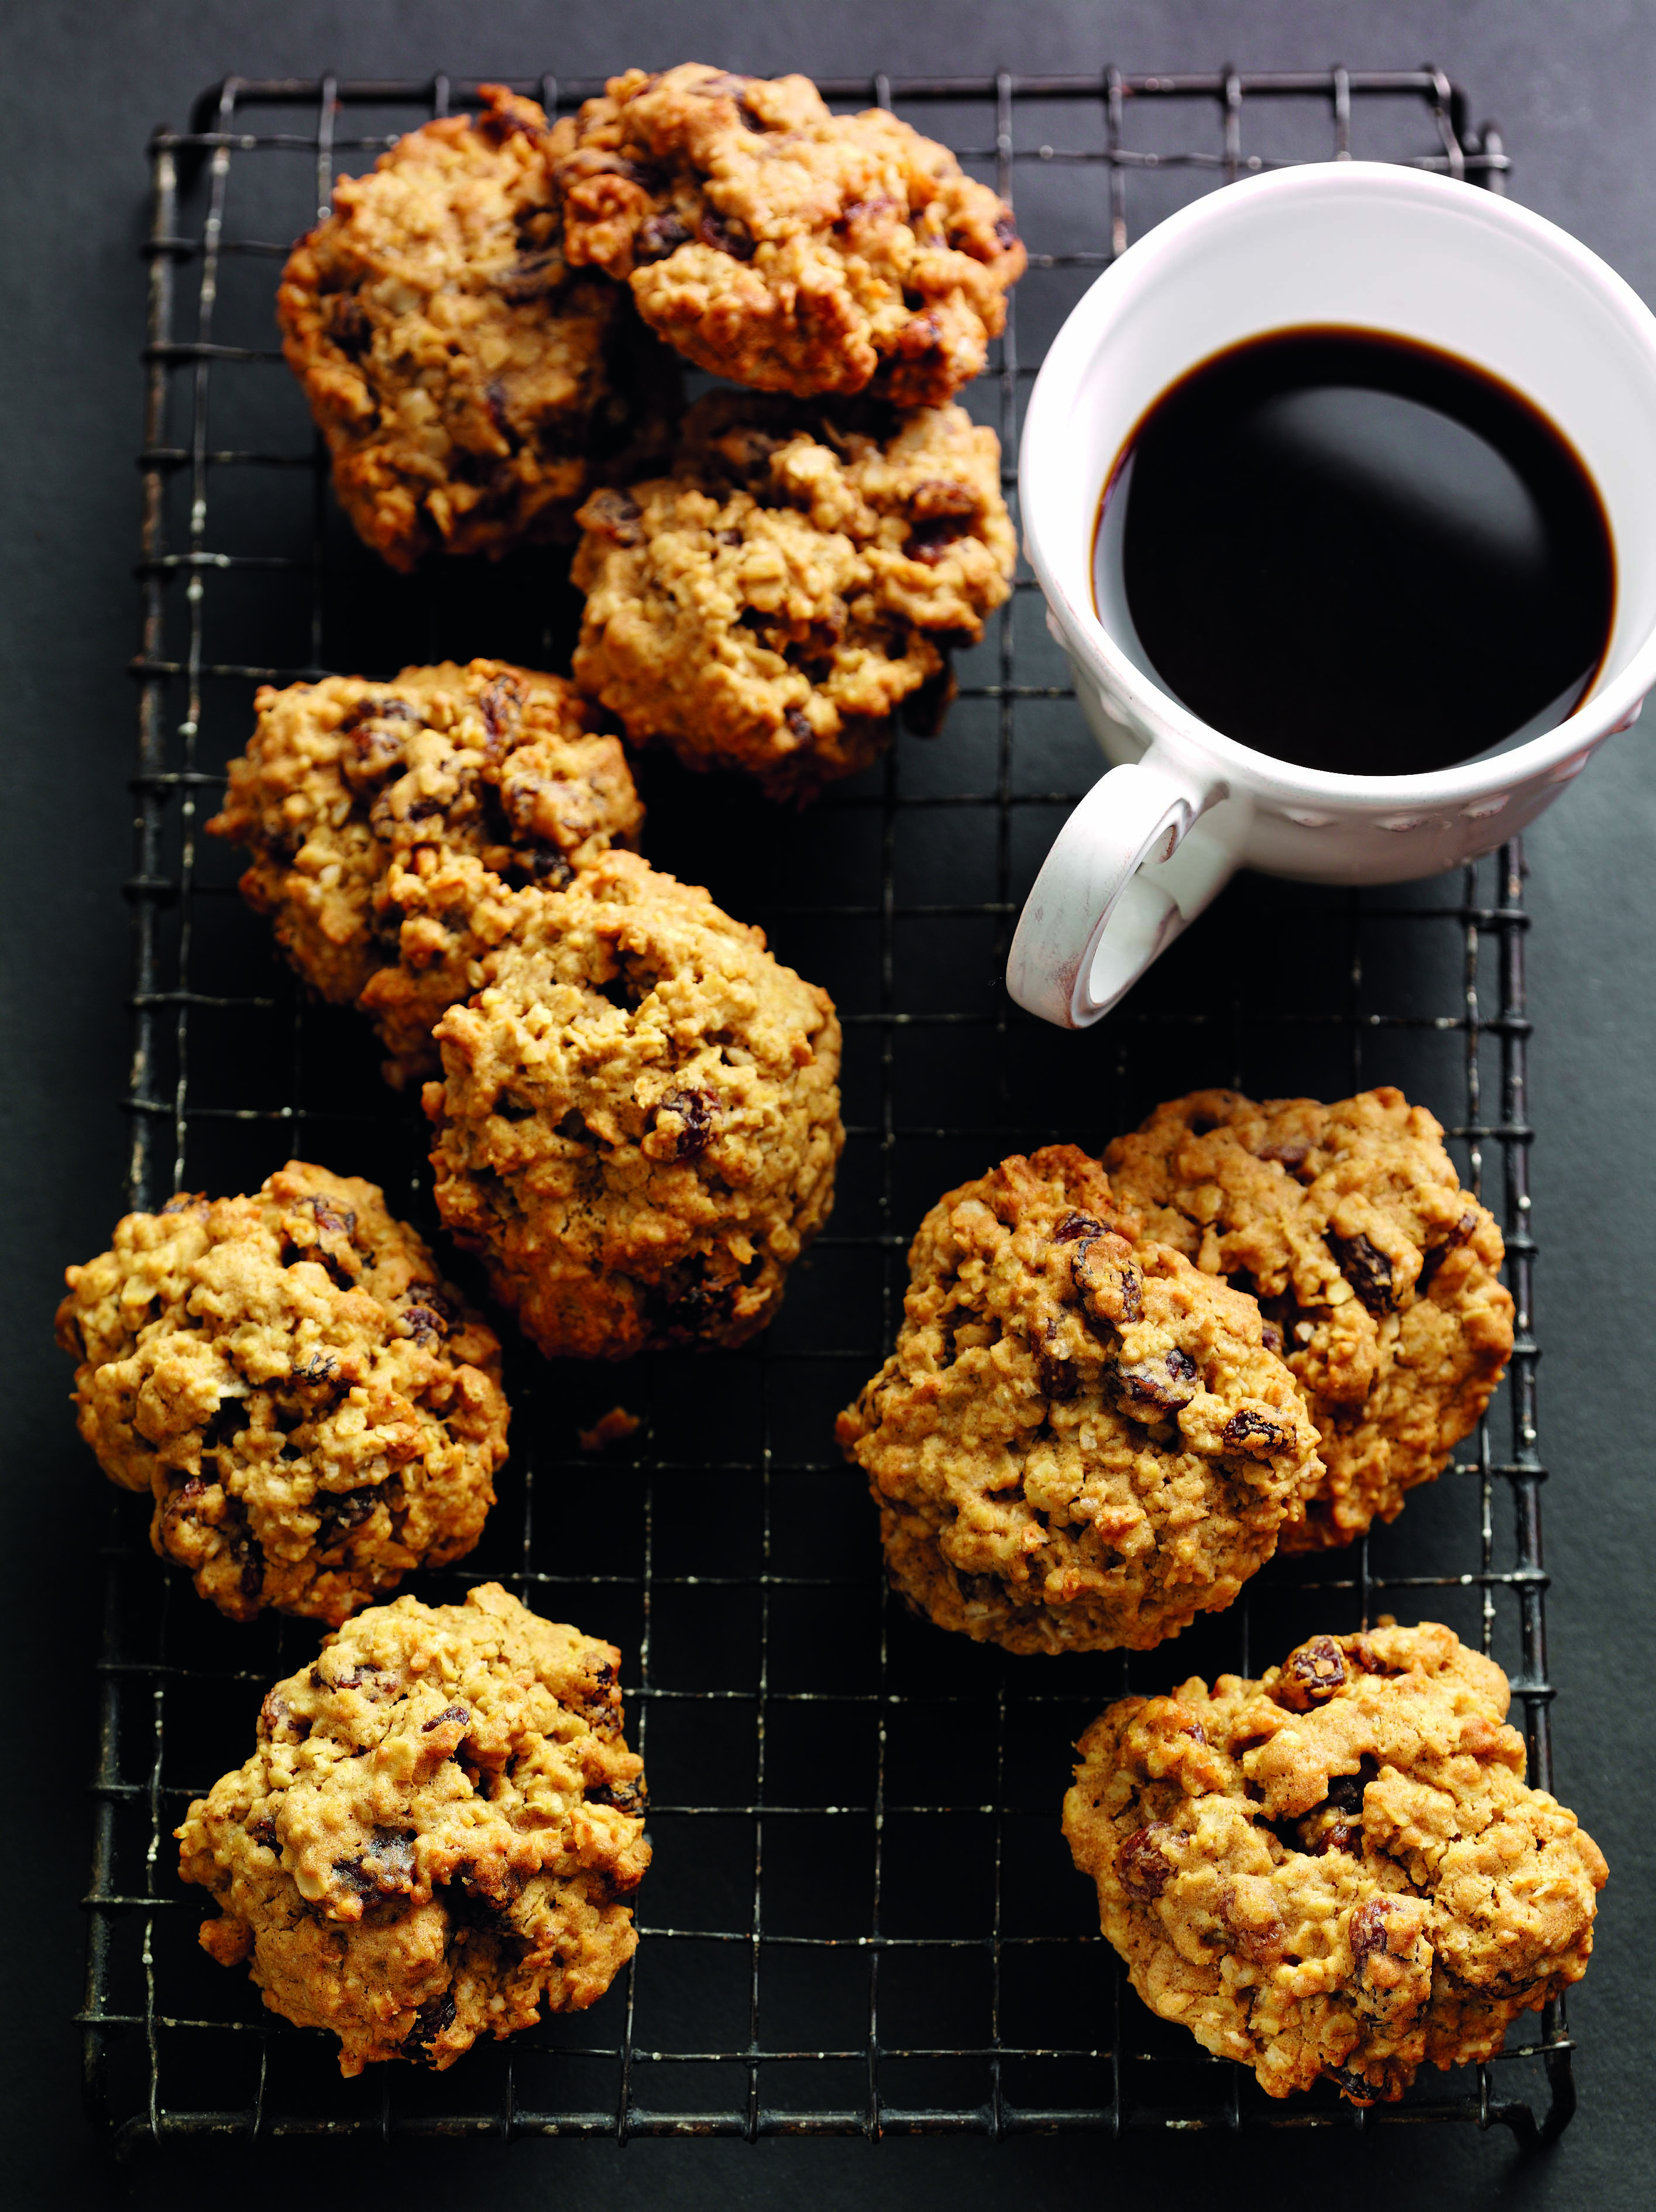 00-Truvias-Oatmeal-and-Raisin-Cookies